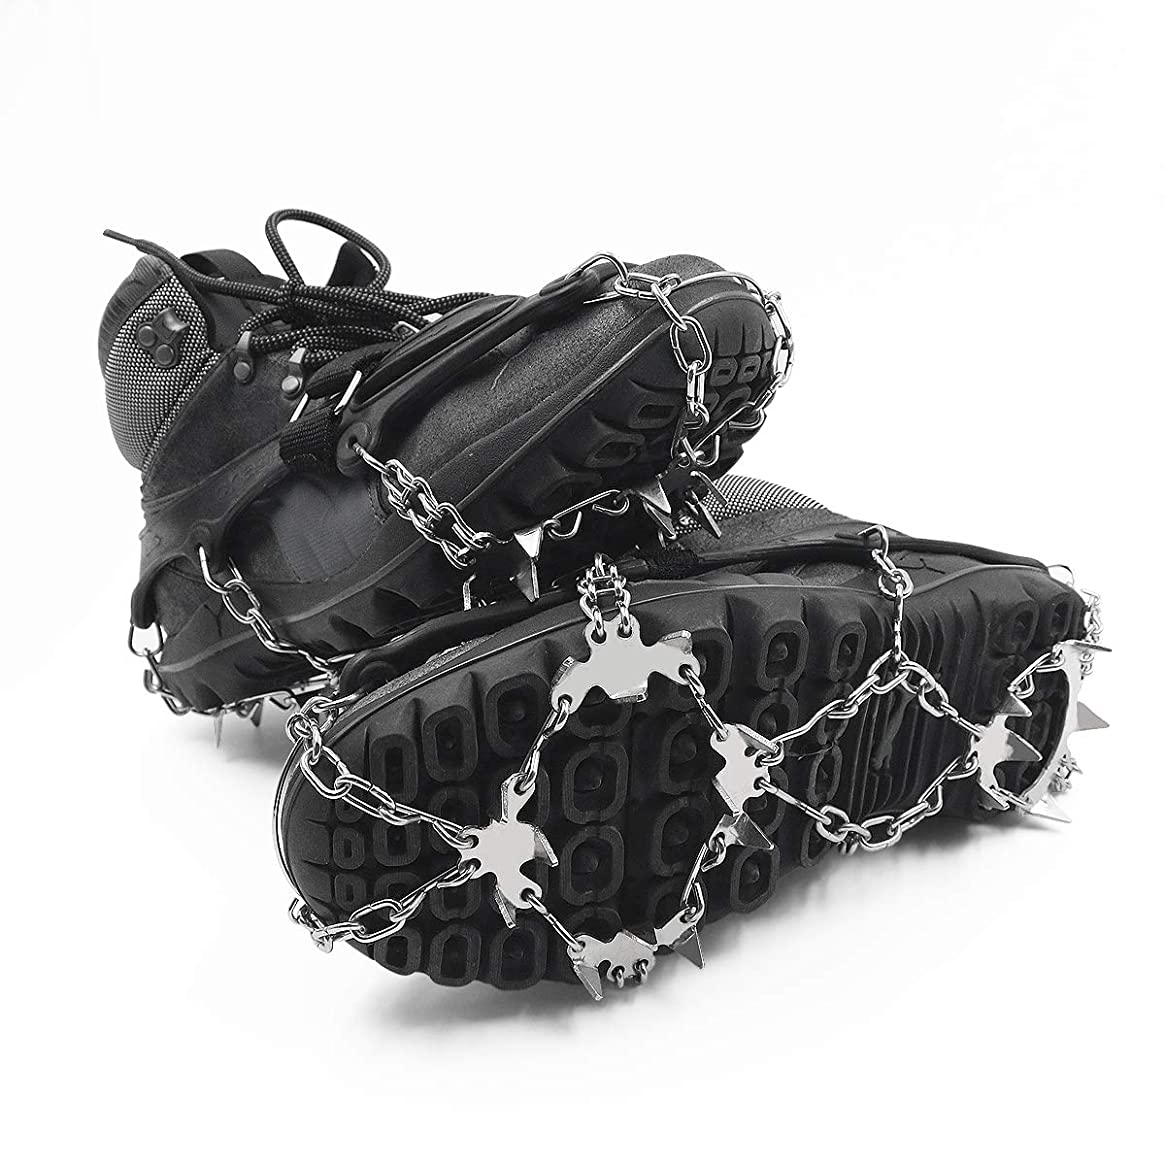 ROCONTRIP Traction Cleats Ice Snow Grips Crampons Anti-Slip Stainless Steel 18 Spikes Crampons for Hiking Fishing Jogging Climbing Walking